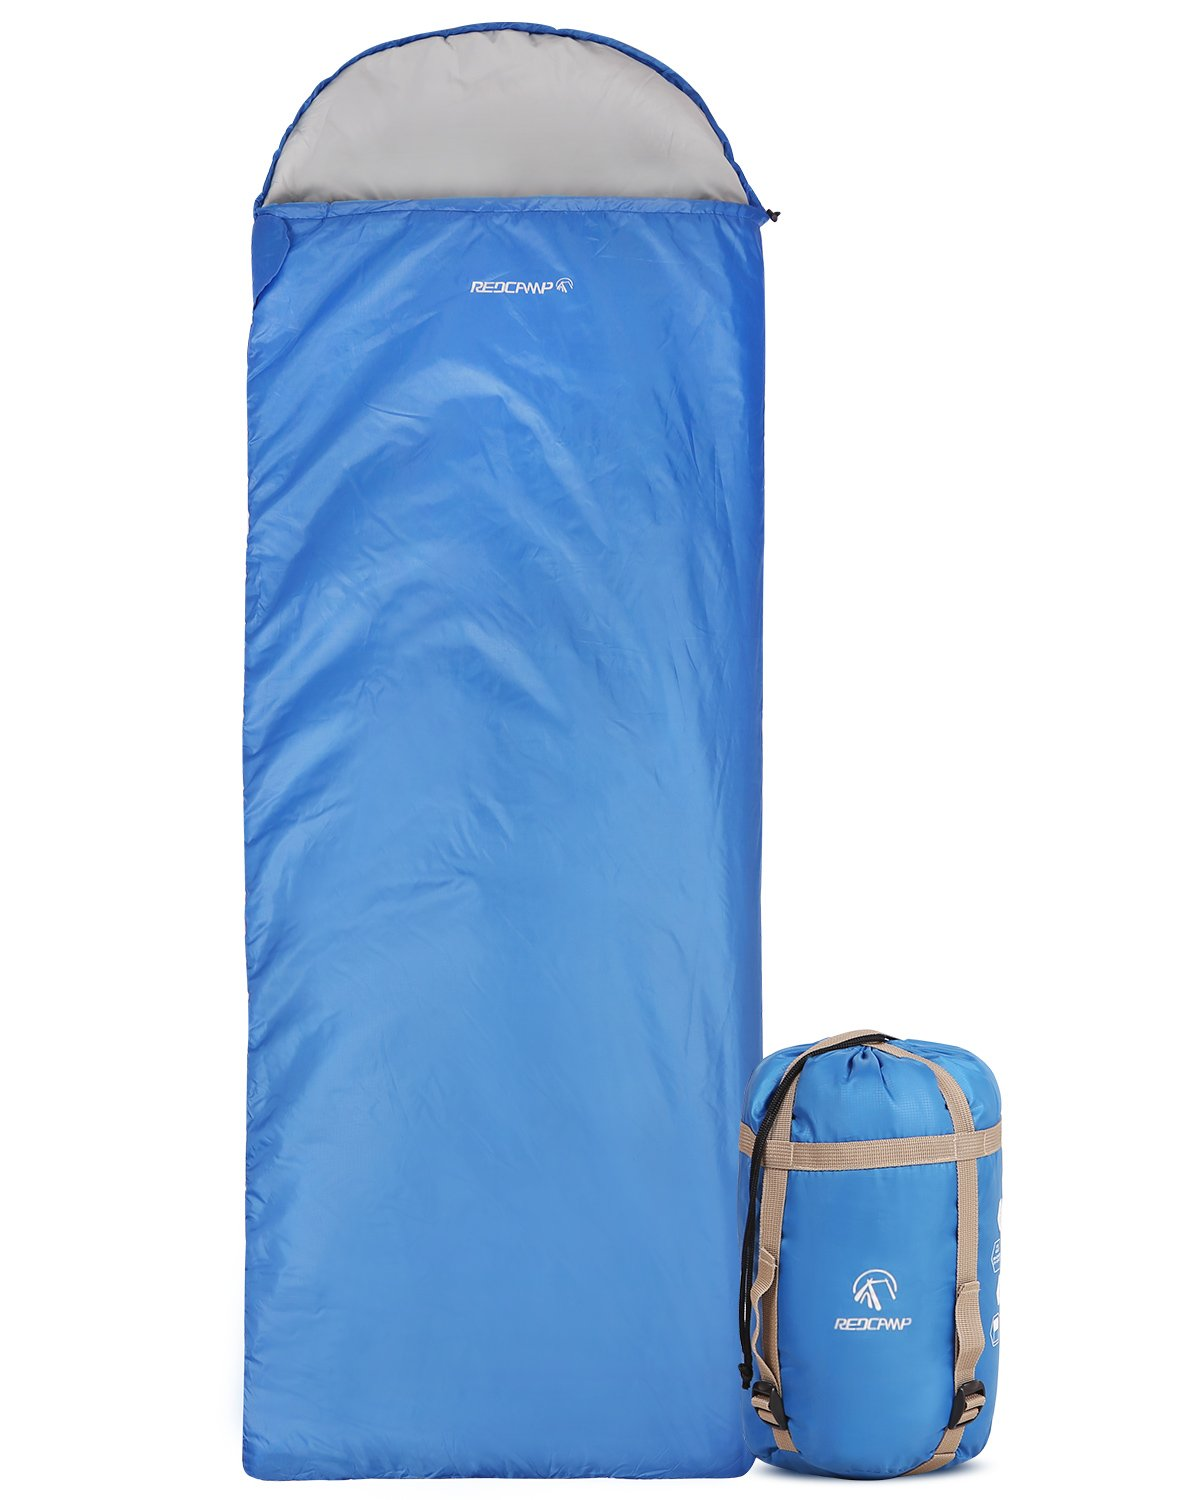 REDCAMP Lightweight Sleeping Backpacking Compression